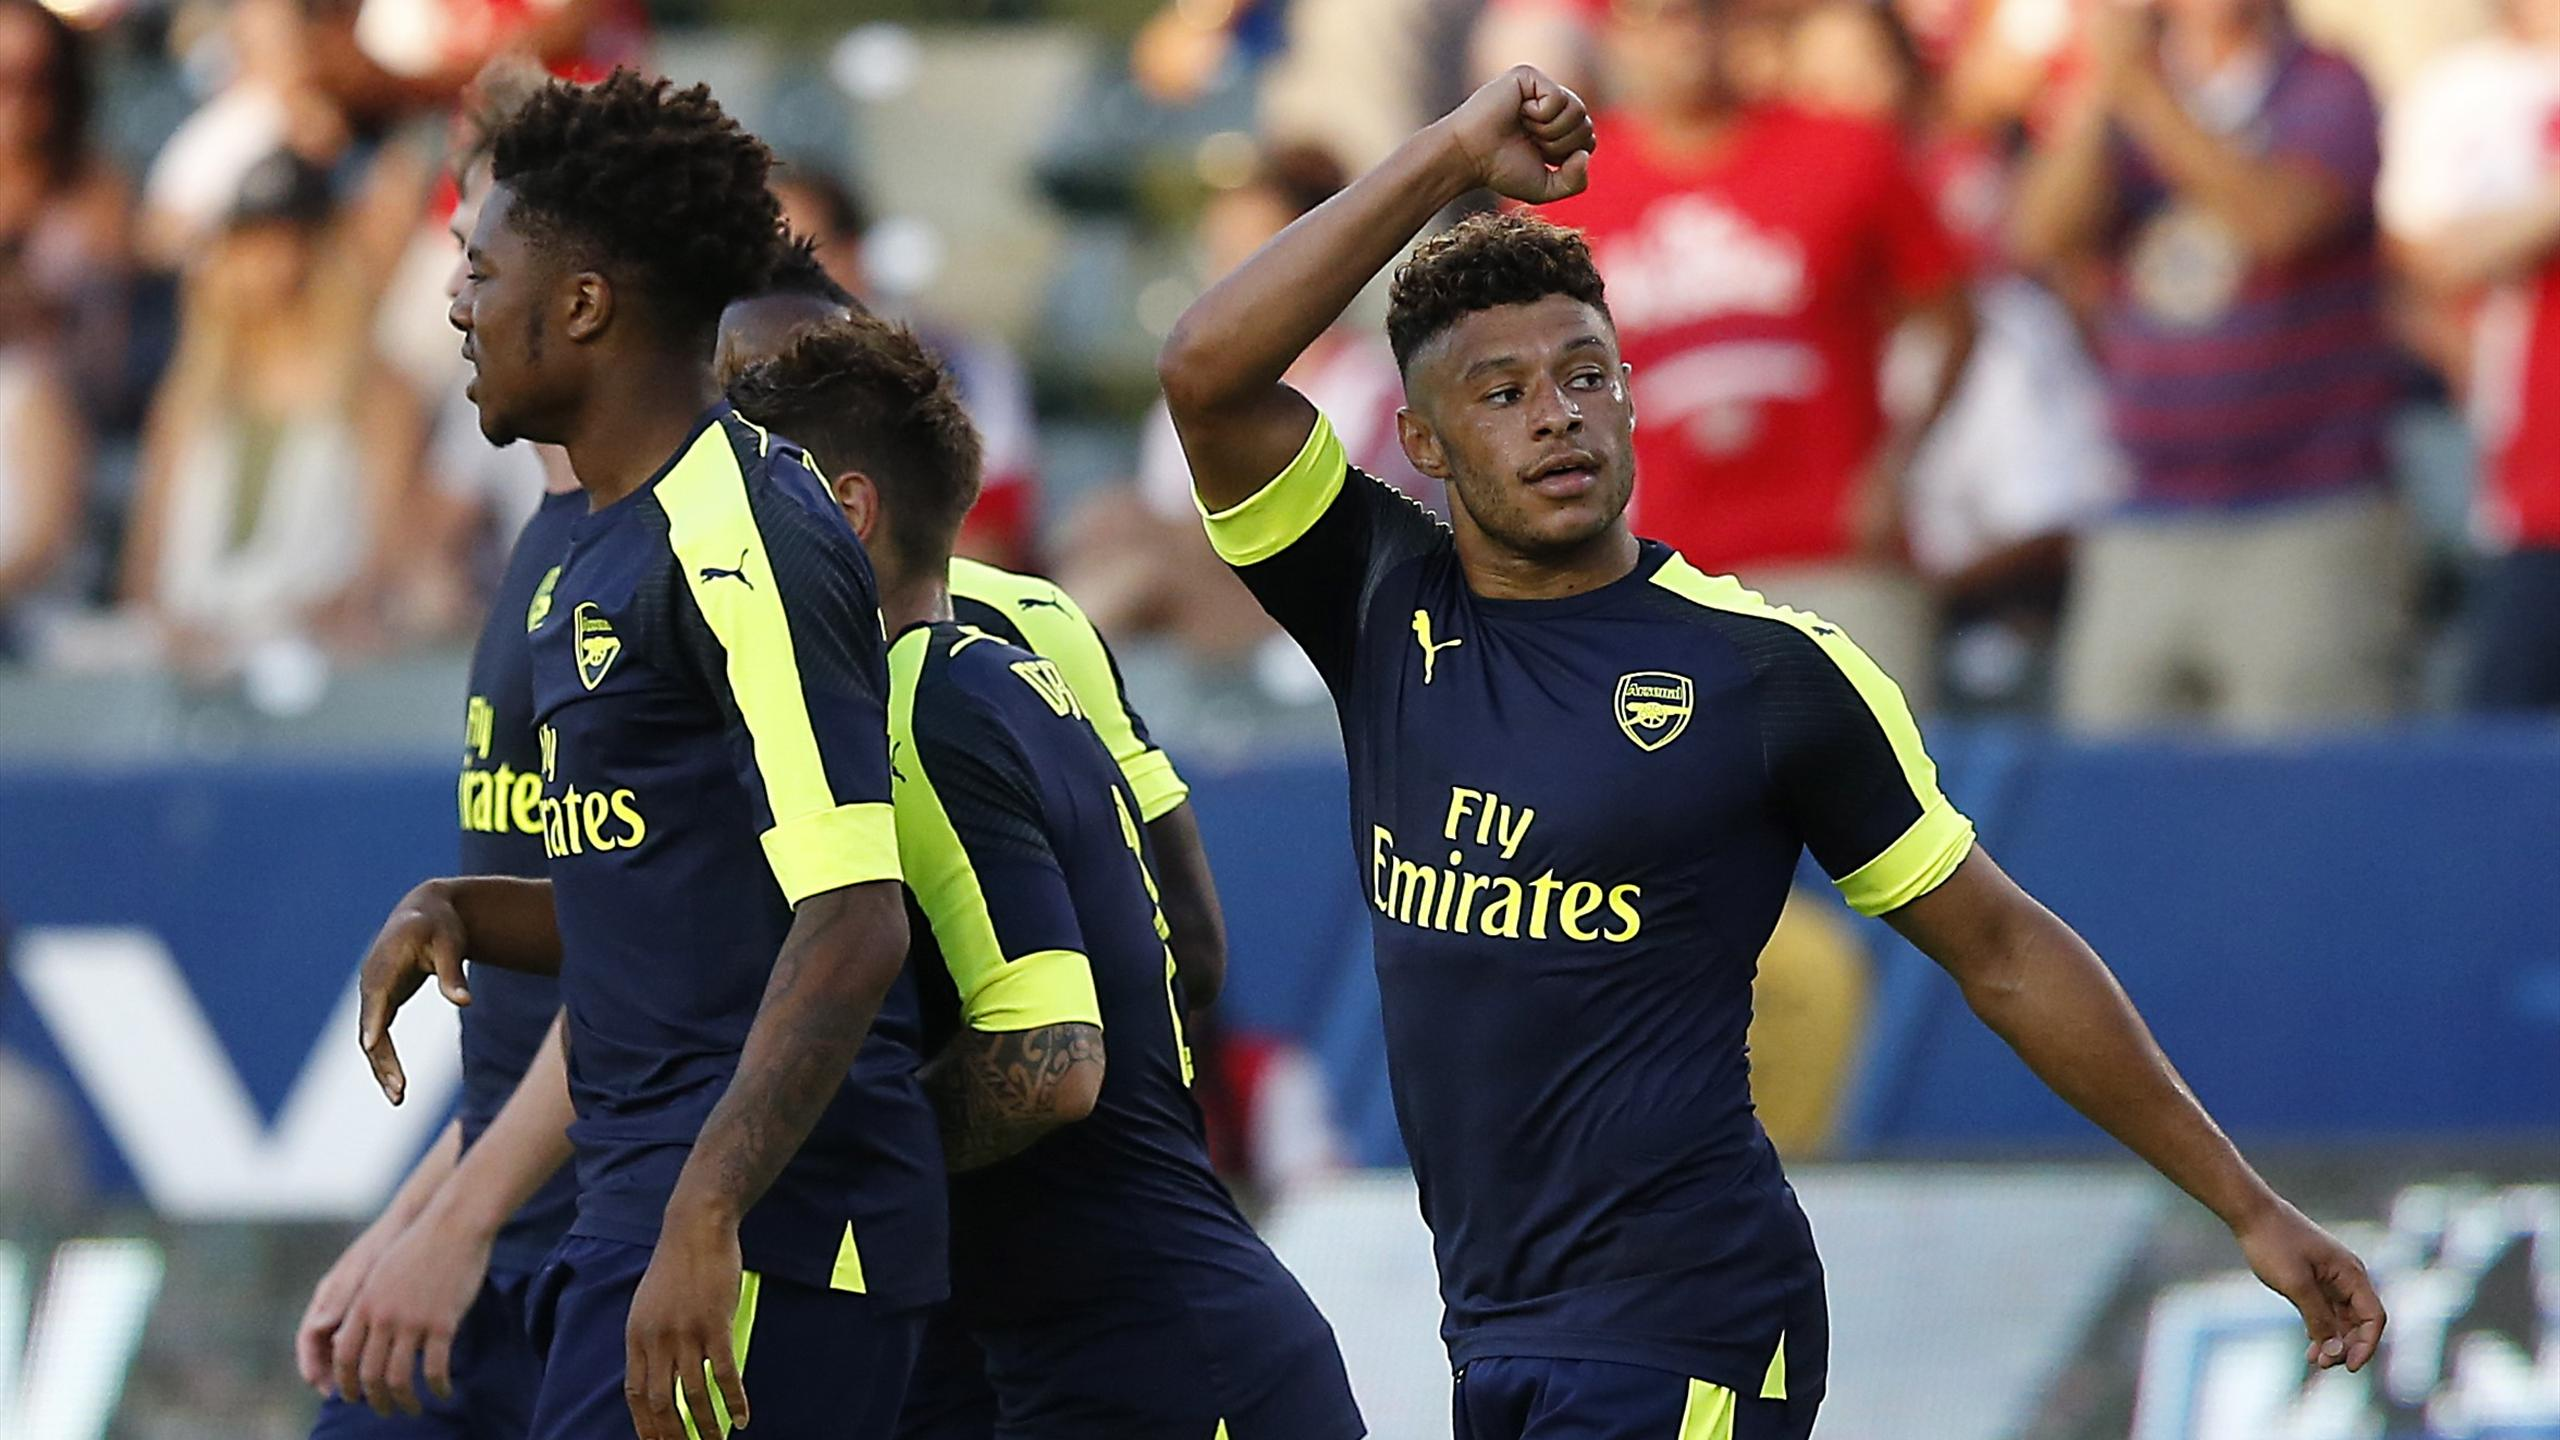 Arsenal's Alex Oxlade-Chamberlain (R) celebrates after scoring their second goal